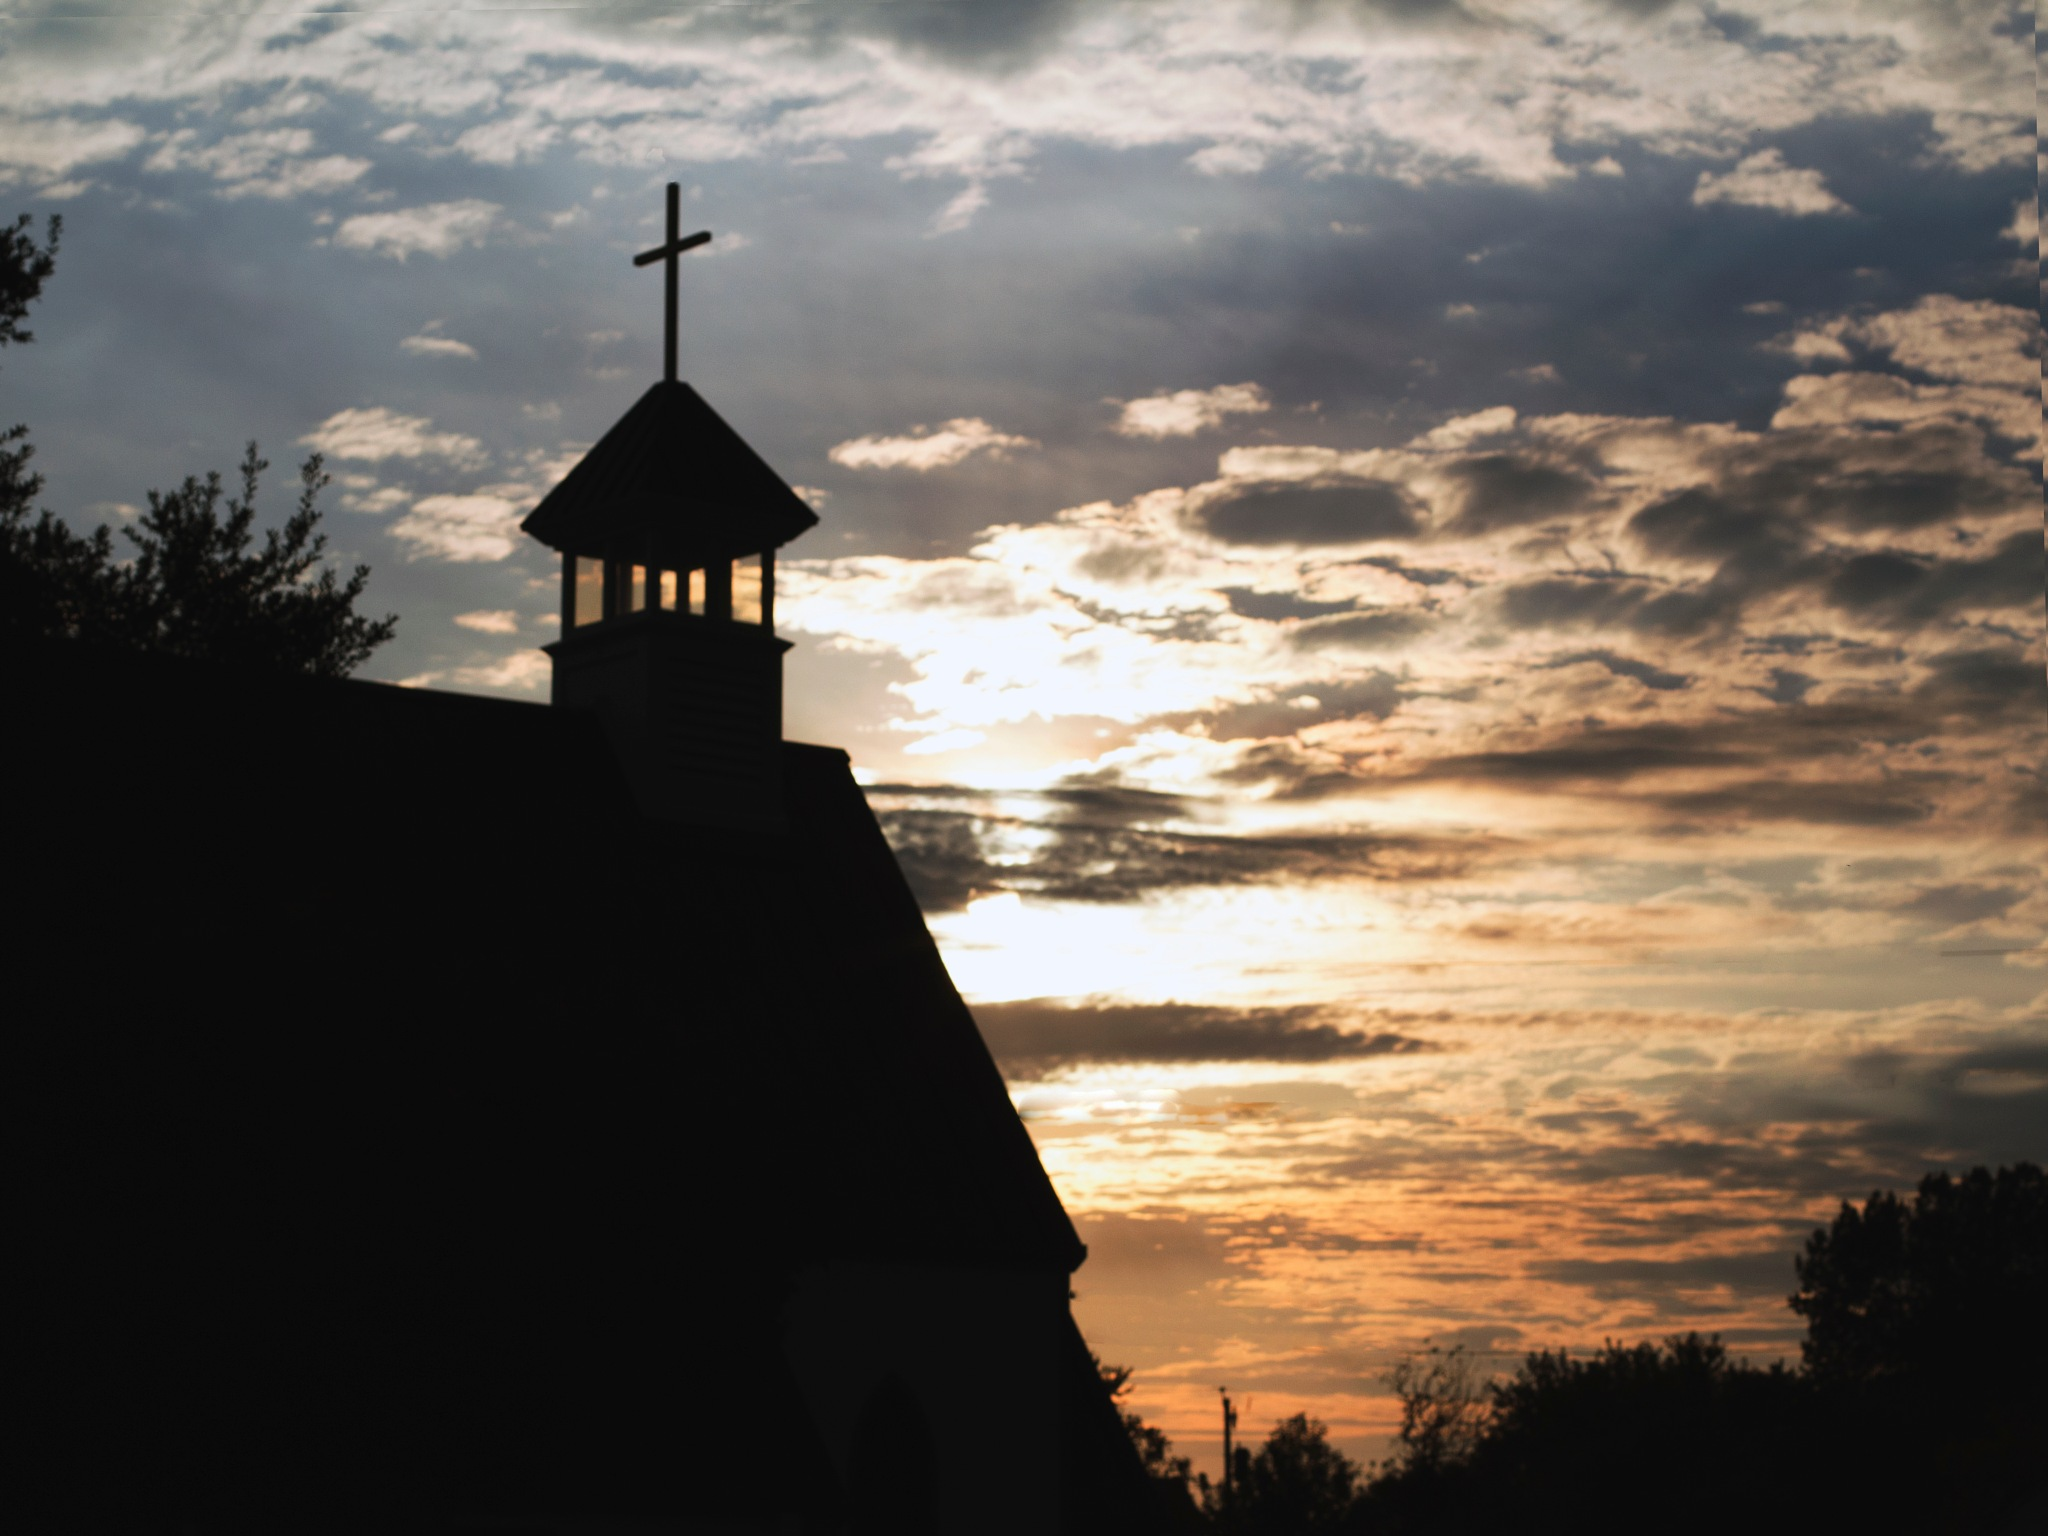 Church silhouette by Mary Carter